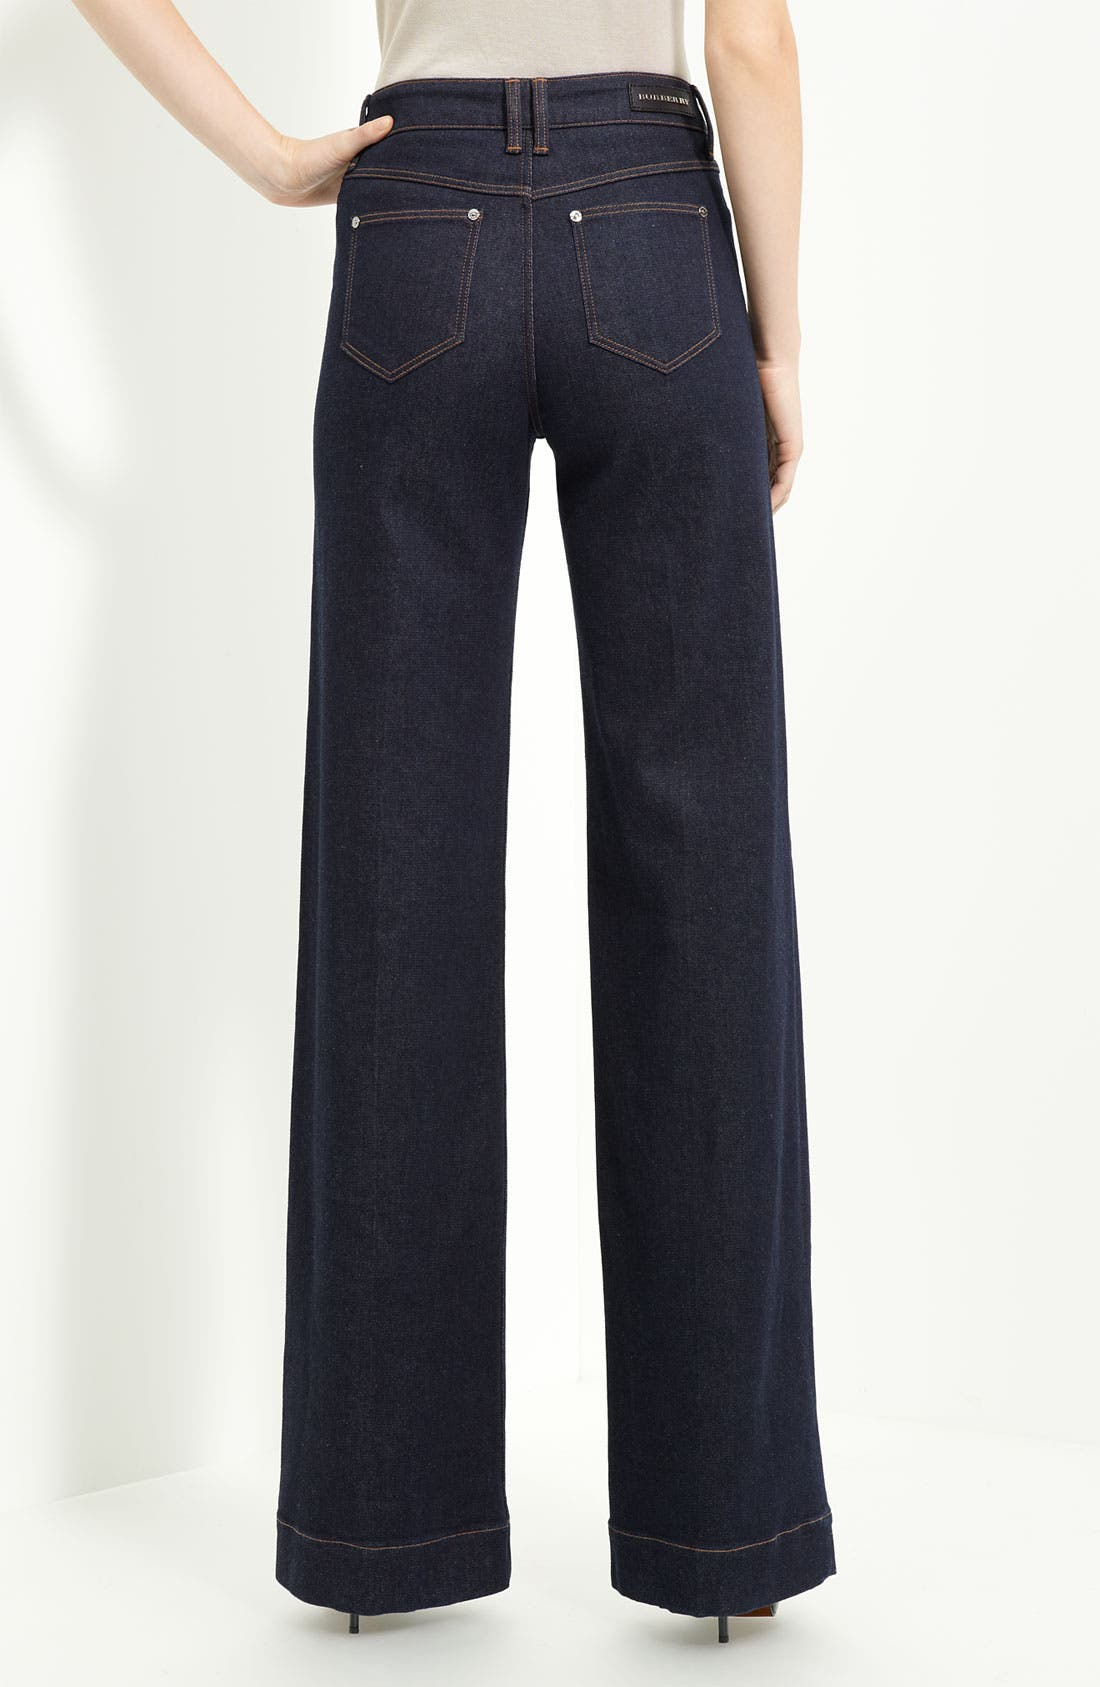 Alternate Image 1 Selected - Burberry London Wide Leg Stretch Jeans (New London Rinse)